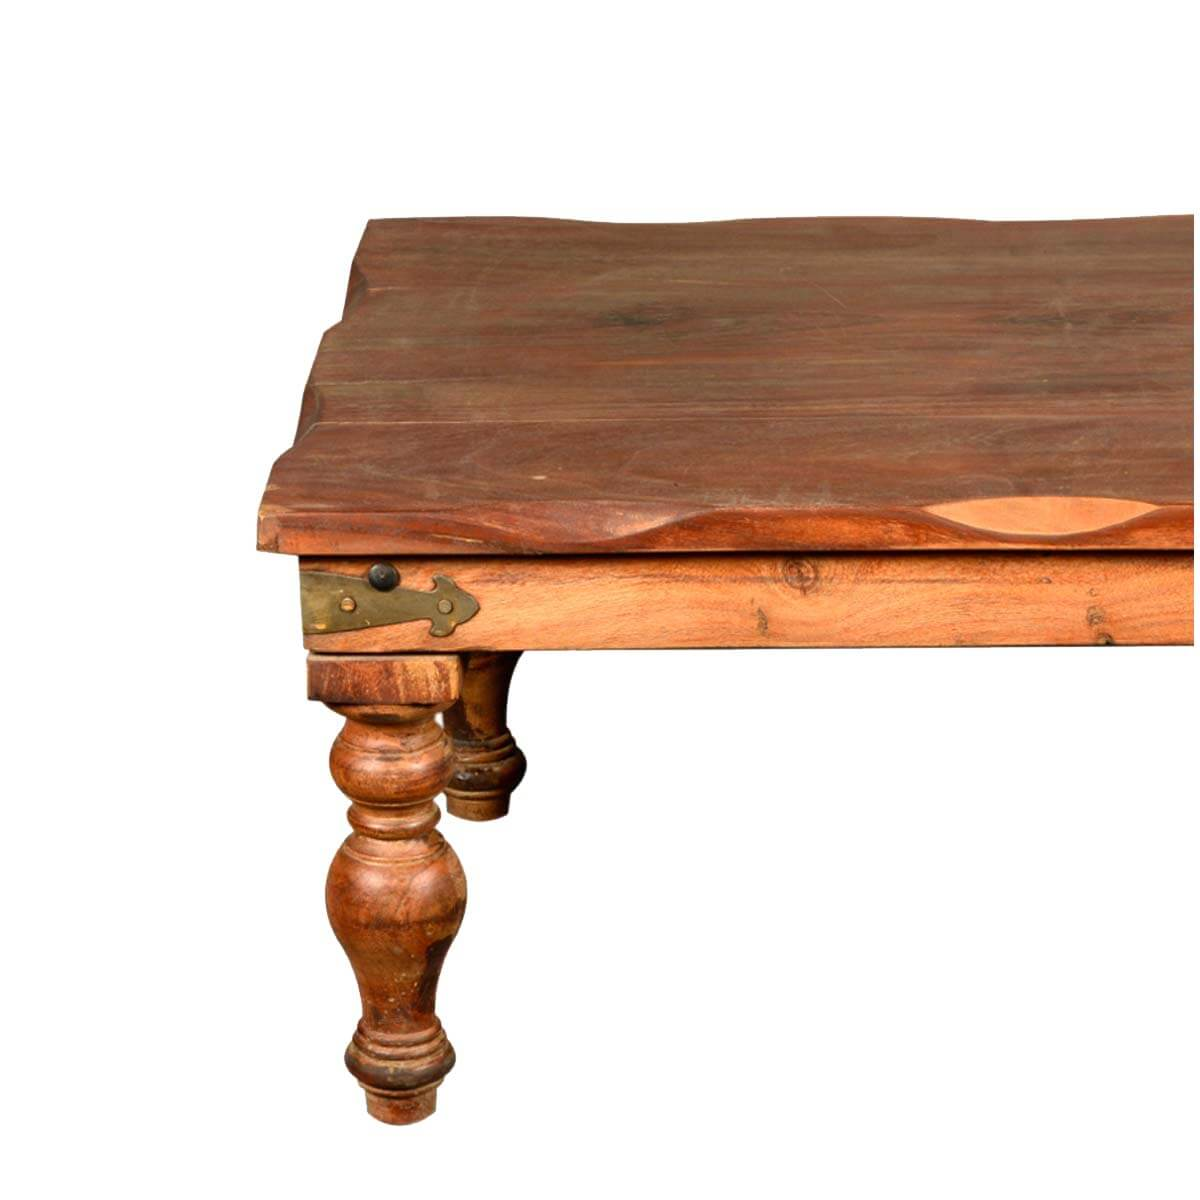 Large Coffee Table Nottingham: Nottingham Scalloped Edge Rustic Reclaimed Wood Coffee Table